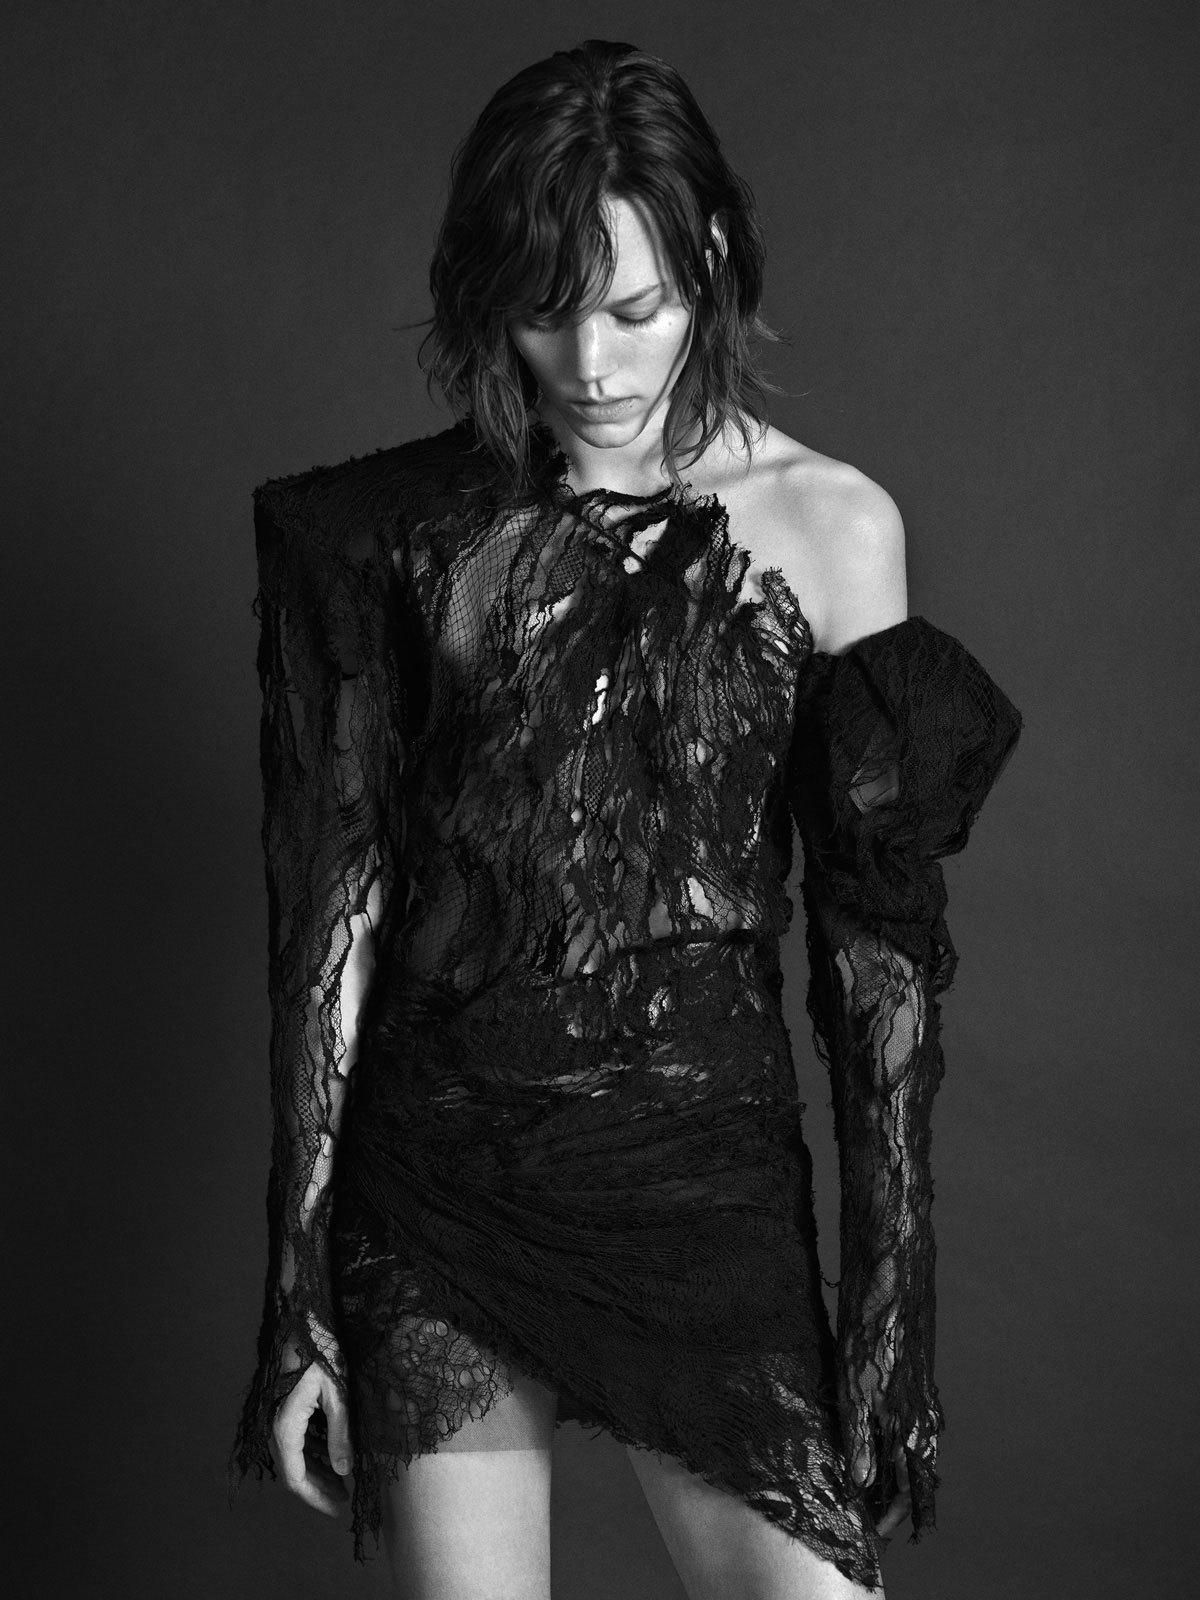 597a952b269 Freja Beha Erichsen this is anthony vaccarello for saint laurent |  Photography Mario Sorrenti Fashion Director Alastair McKimm | i-D